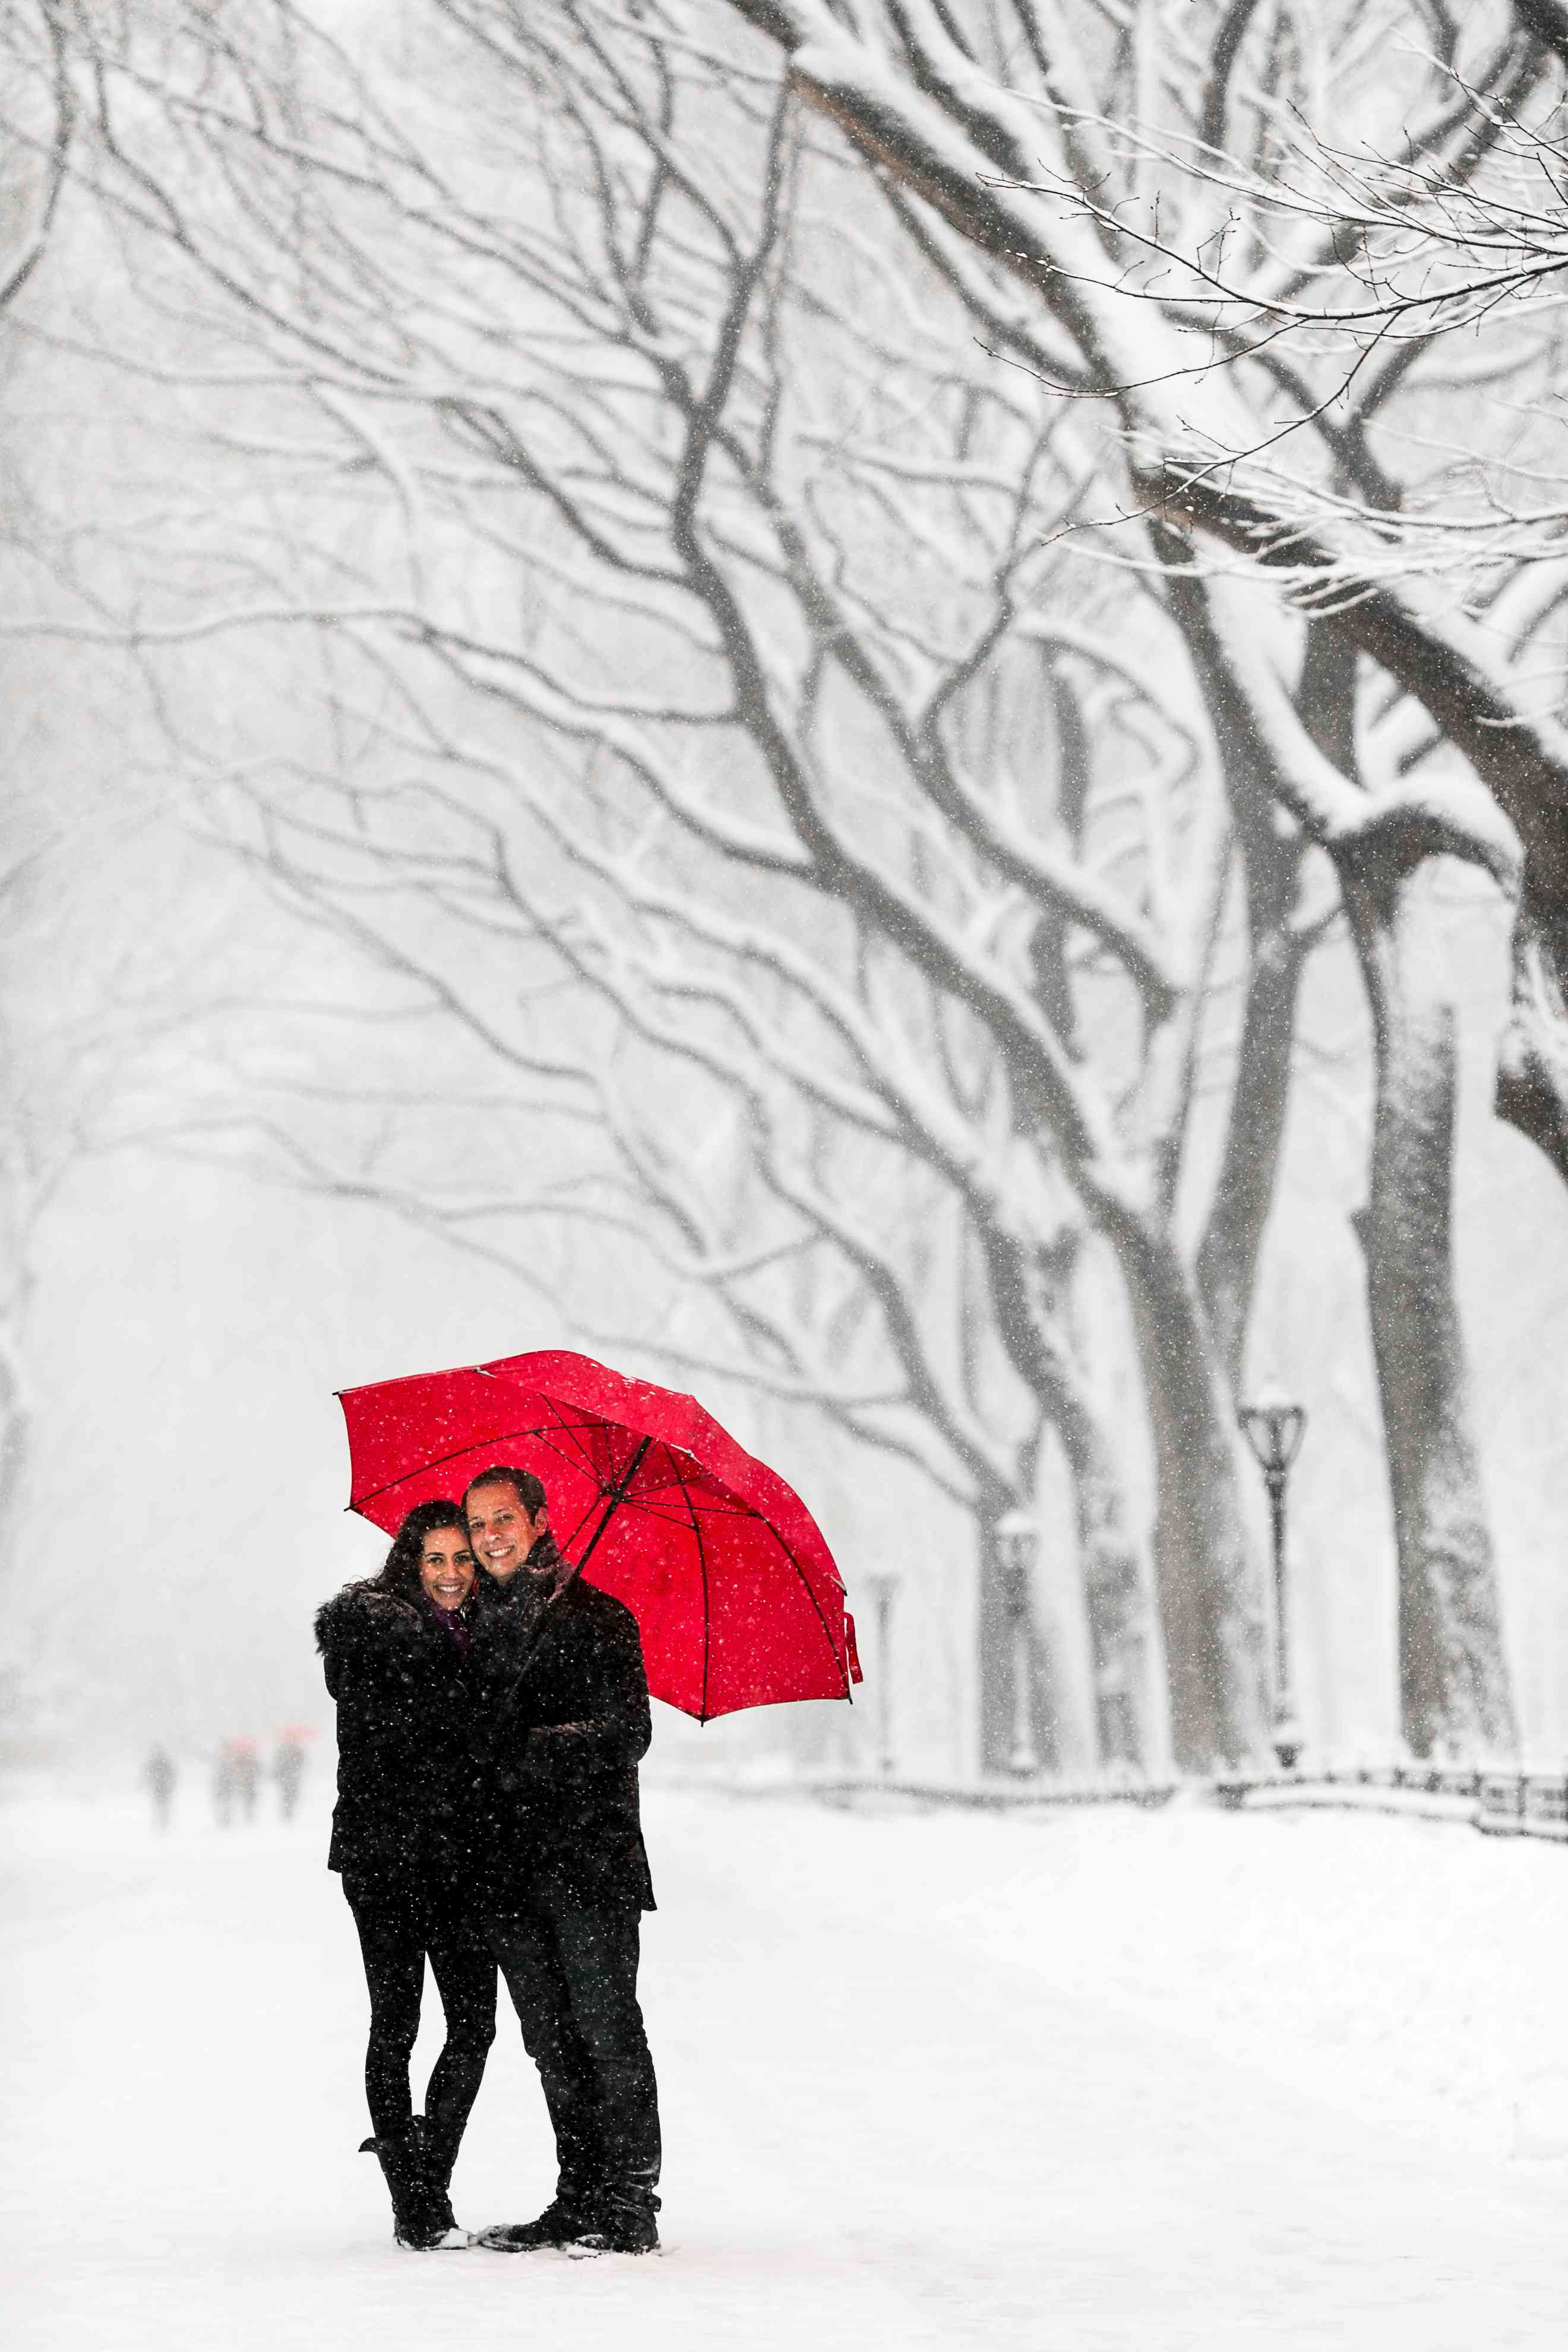 Couple posing in the snow with umbrella